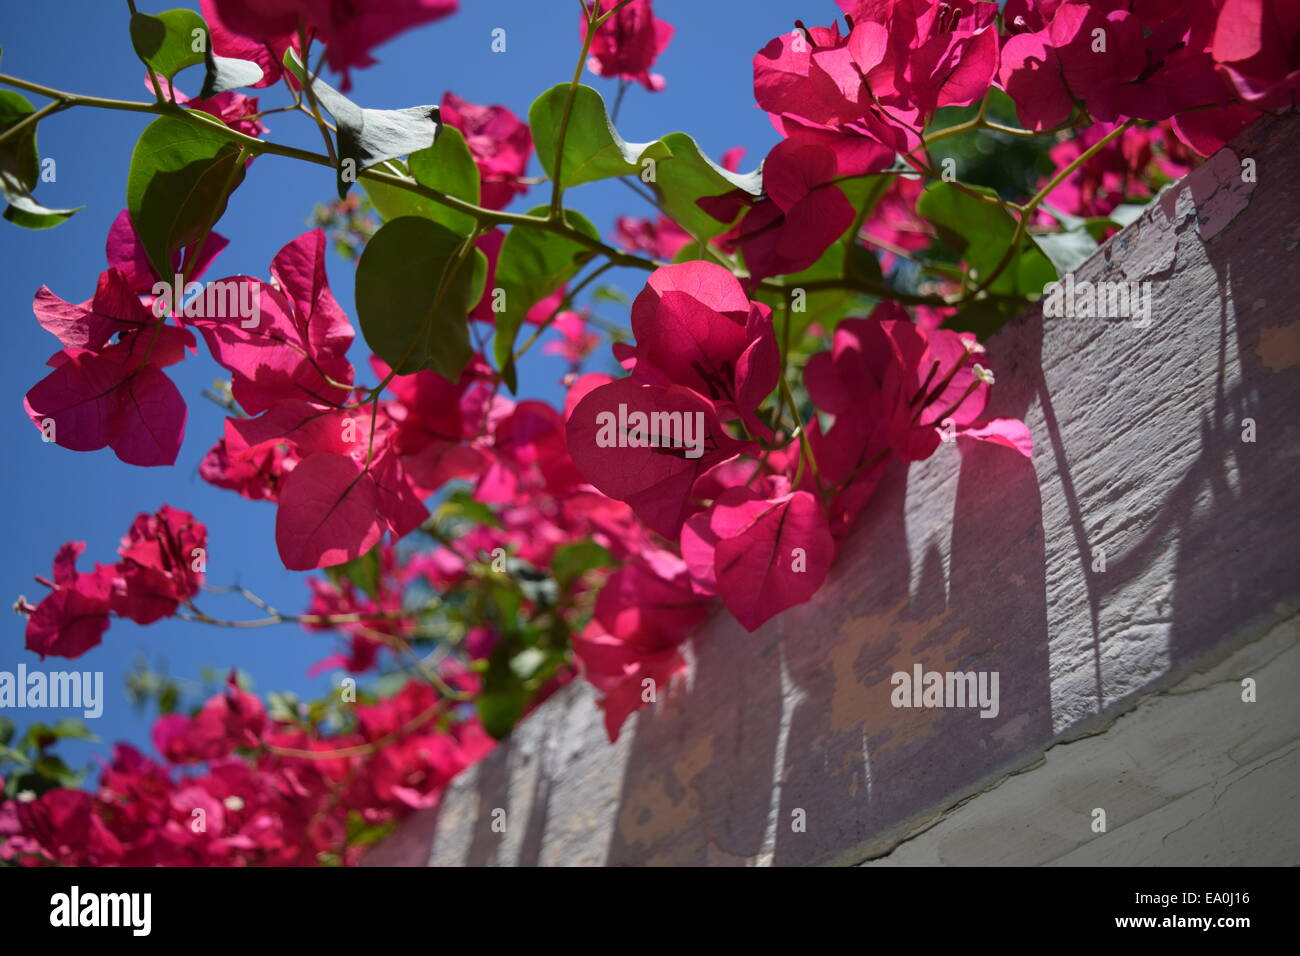 Bougainvillea under the blue summer sky - Stock Image